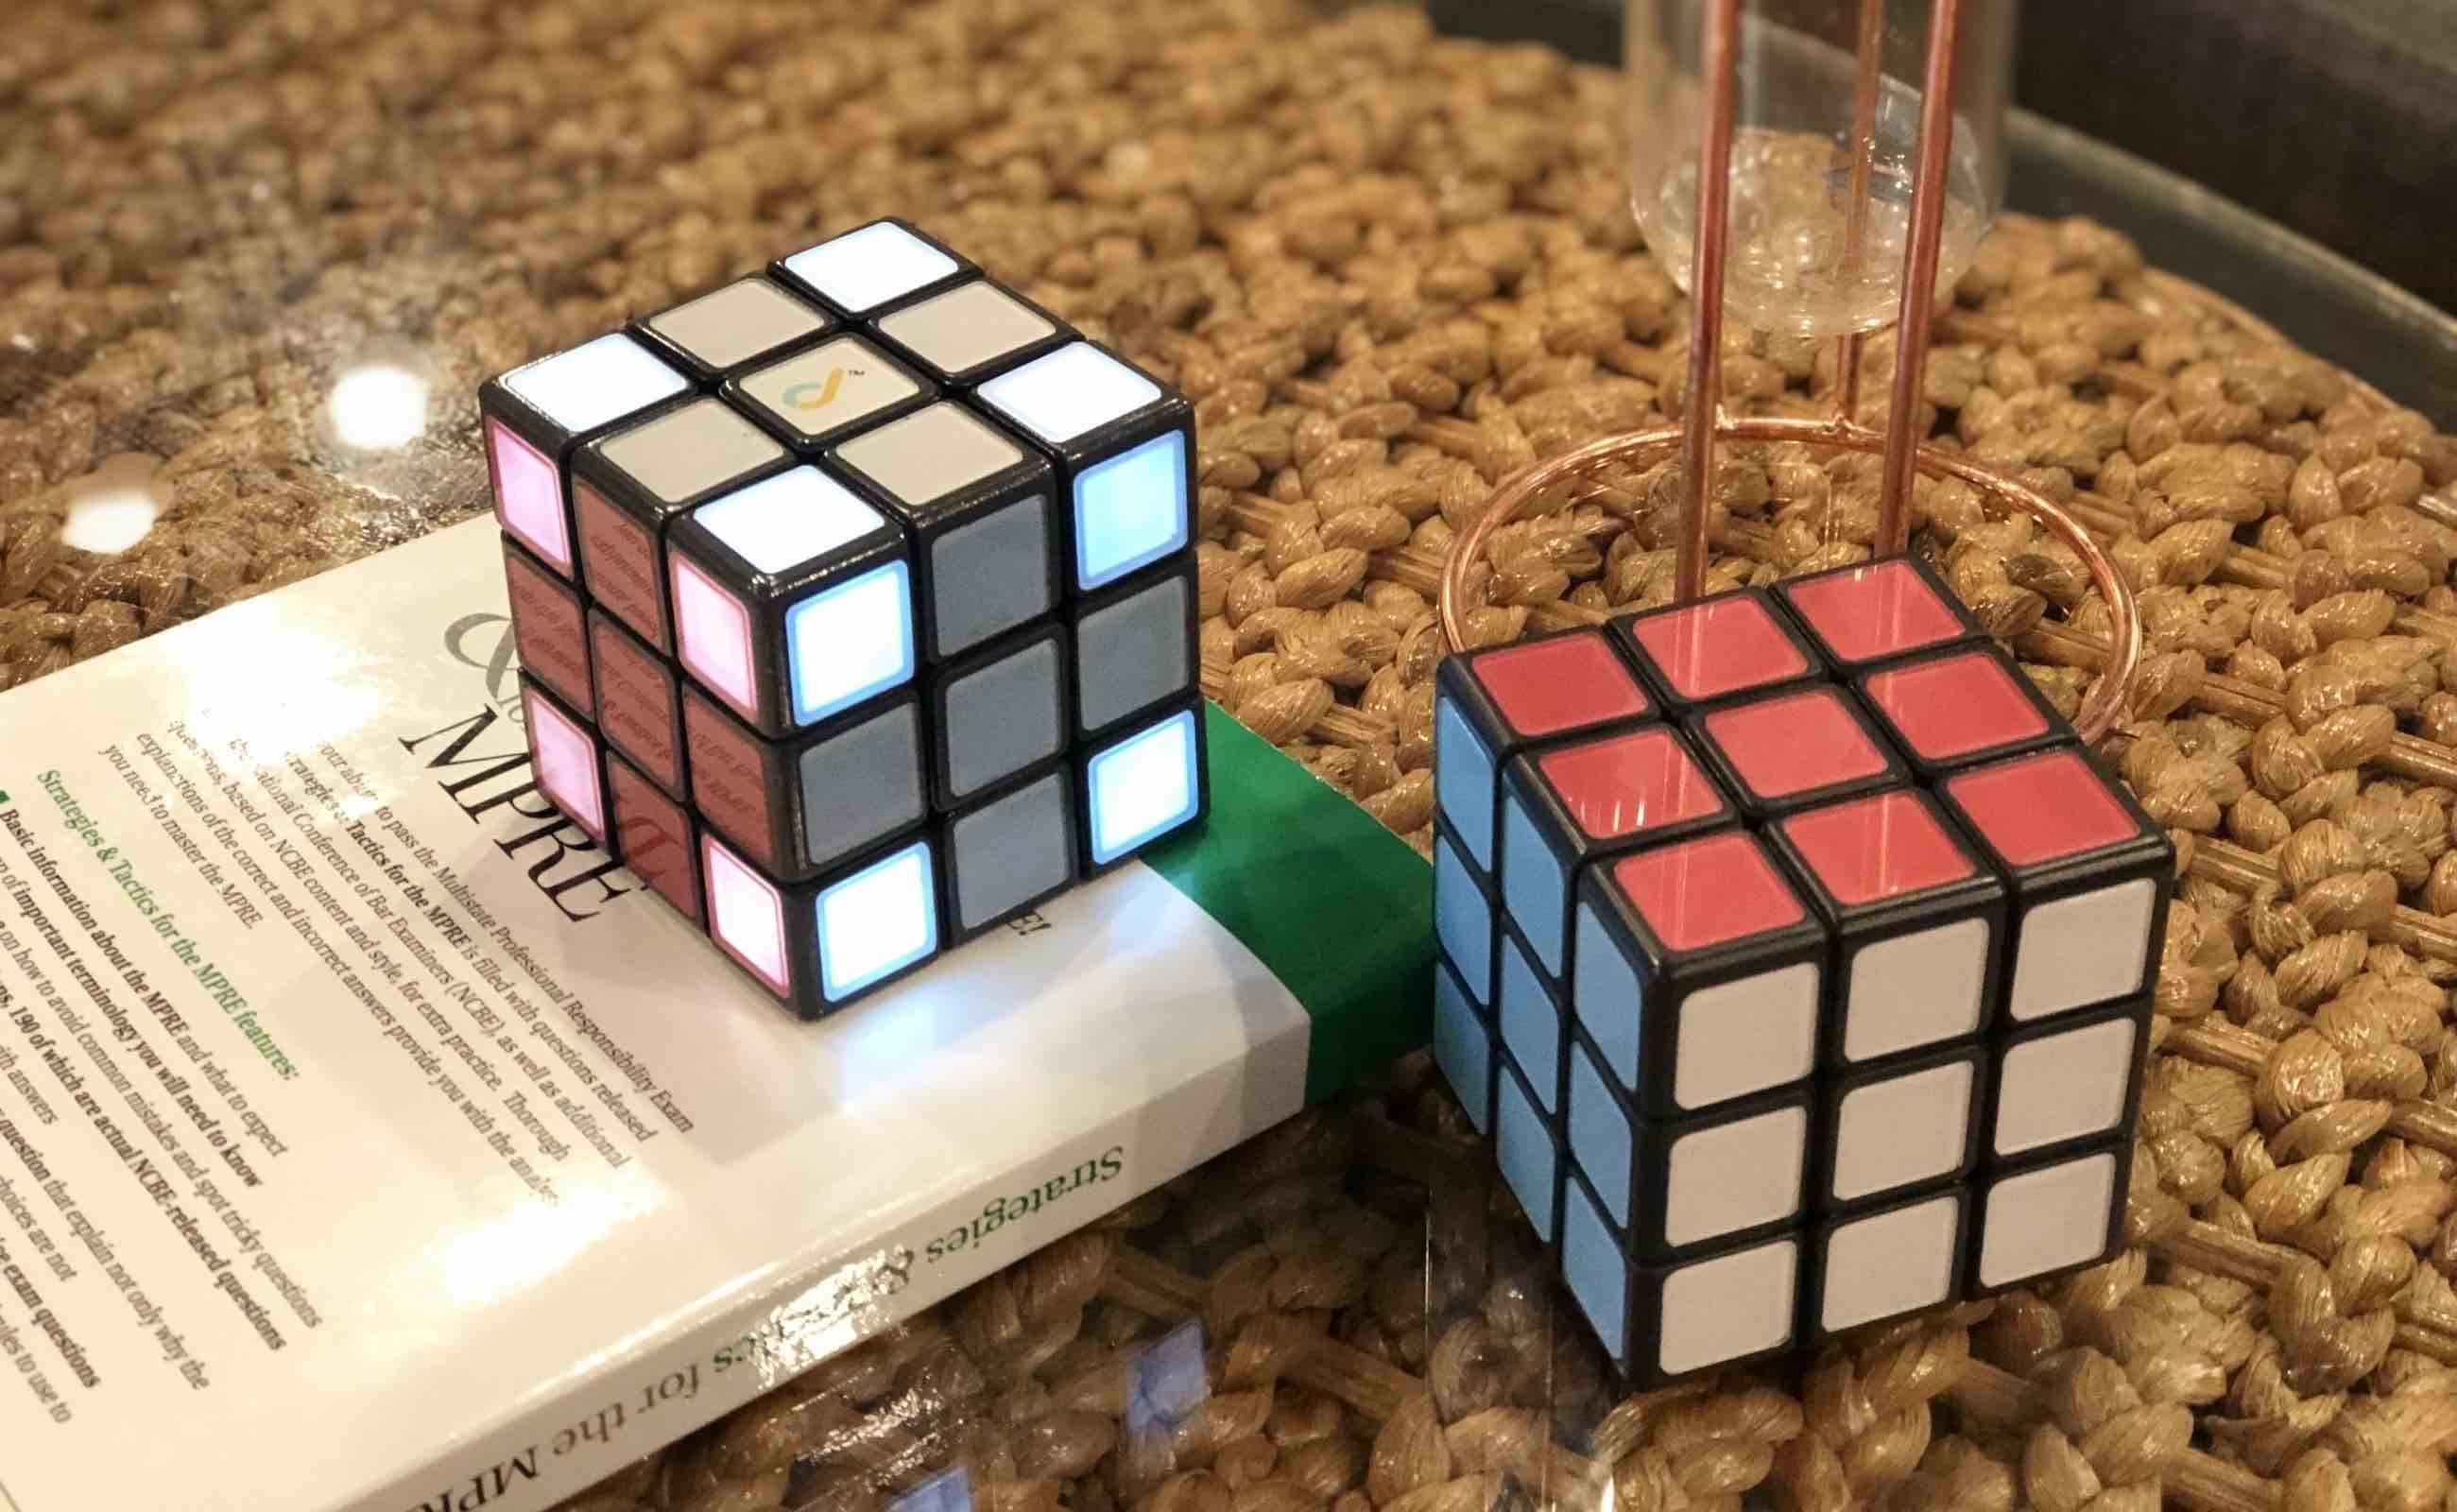 JUNECUBE Smart Rubik's Cube helps you solve the puzzle